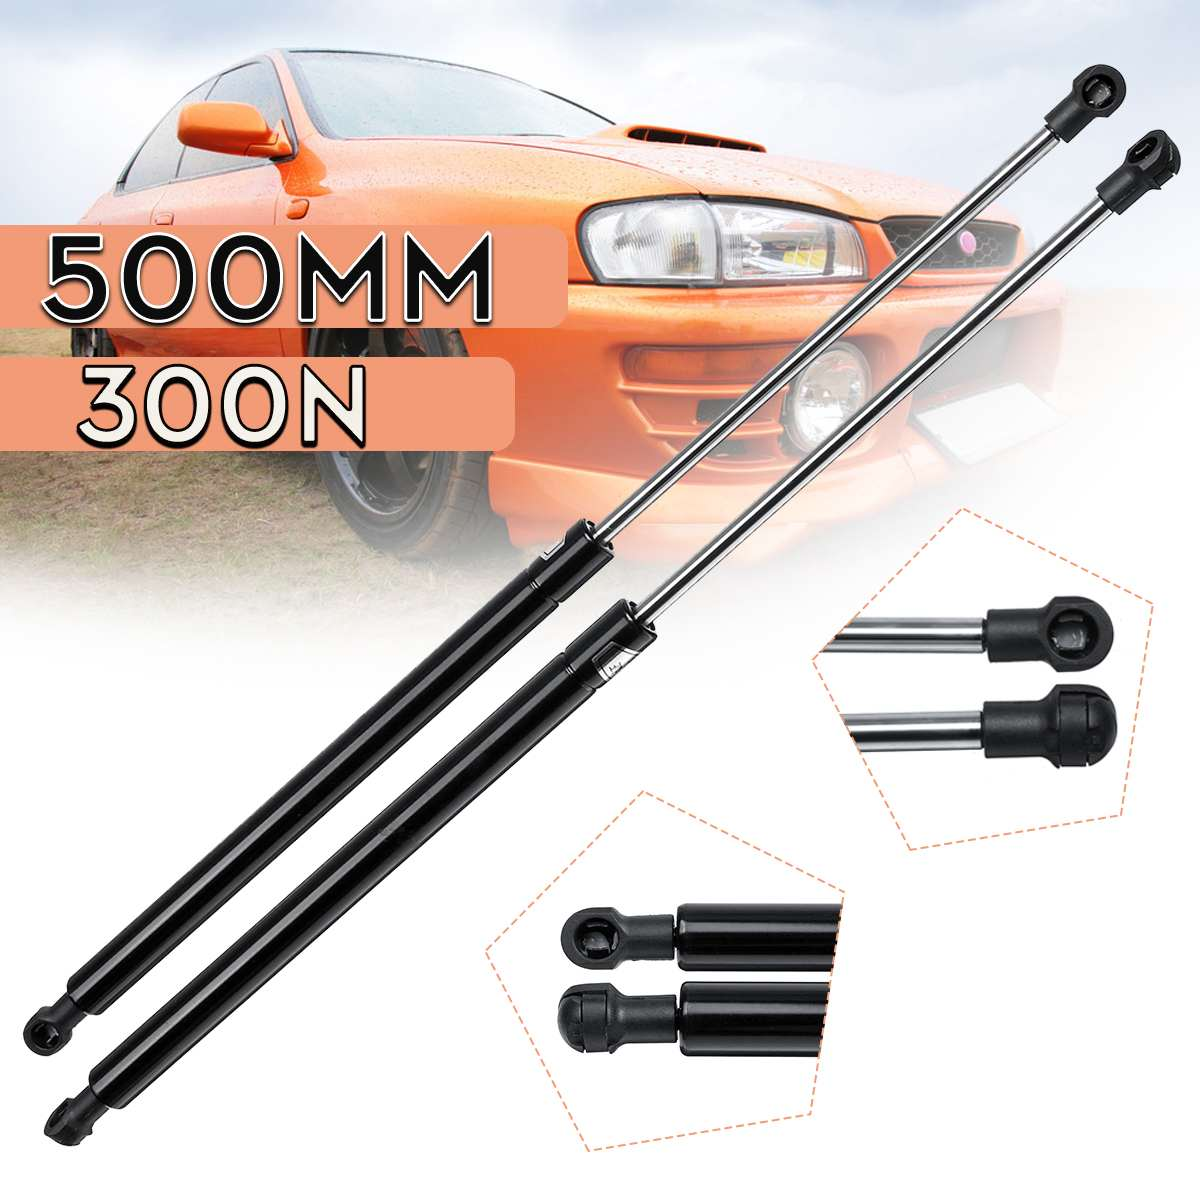 2x LIFT-O-MAT Gas Spring for Car Boot Tailgate Saloon